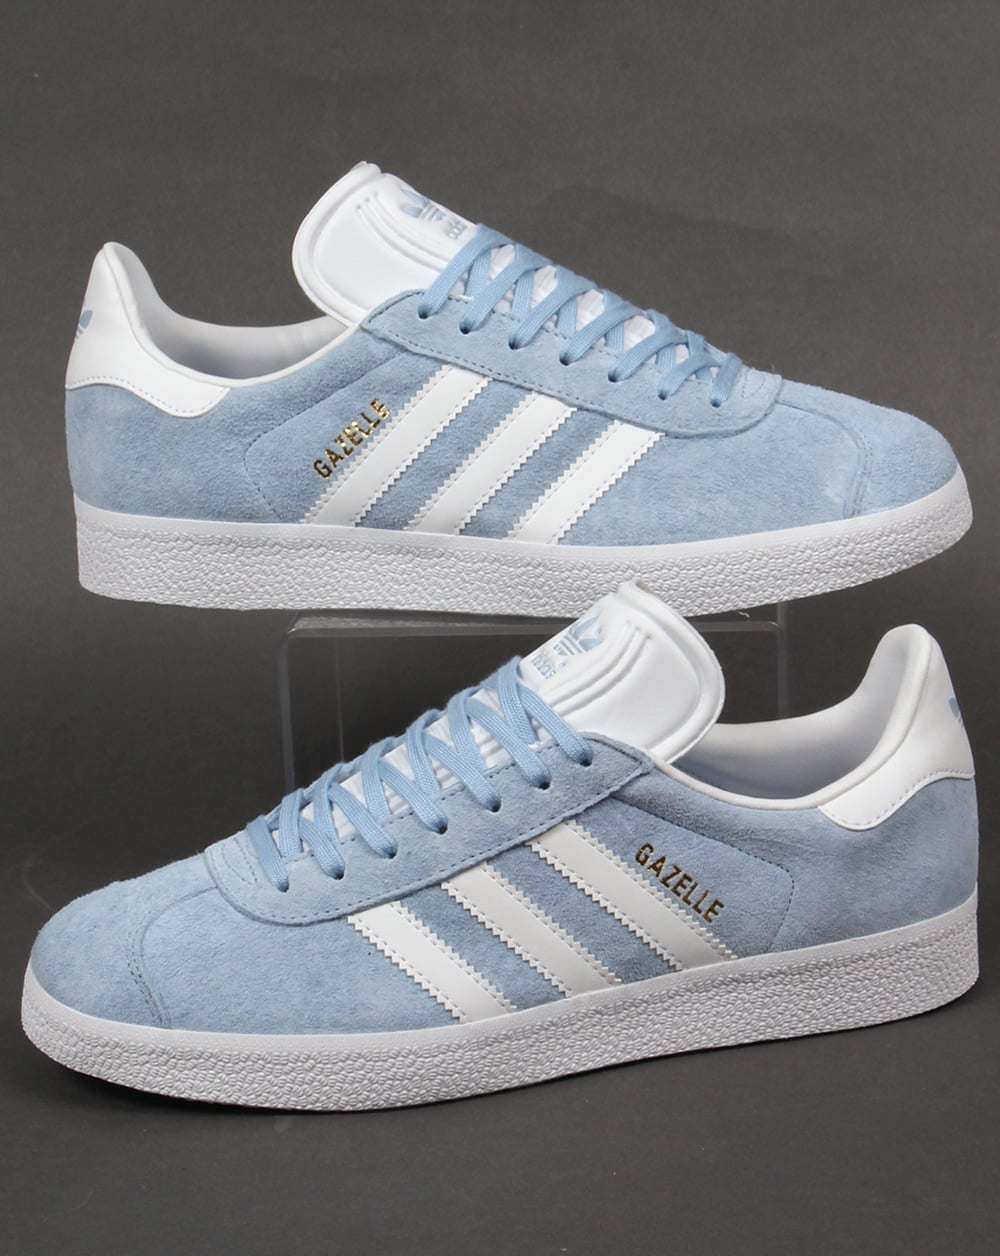 b9f8d184bfb adidas Trainers Adidas Gazelle Trainers Sky White